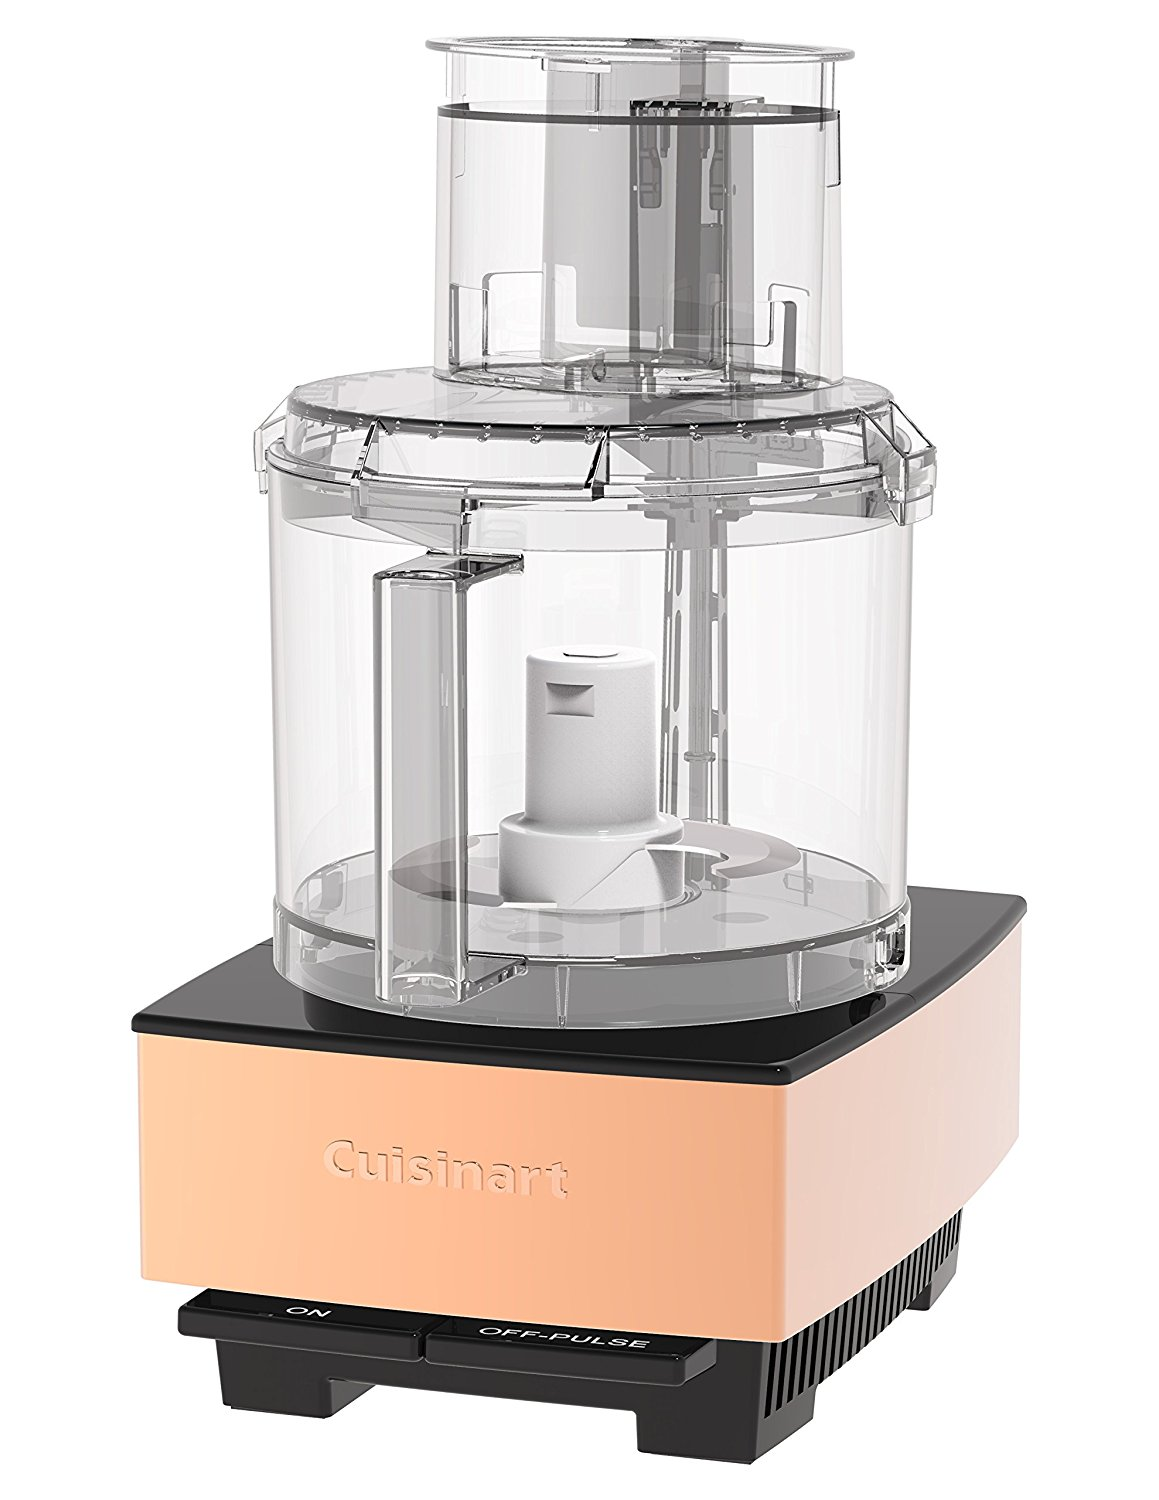 Normally $170, this #1 bestselling food processor is 32 percent off today (Photo via Amazon)